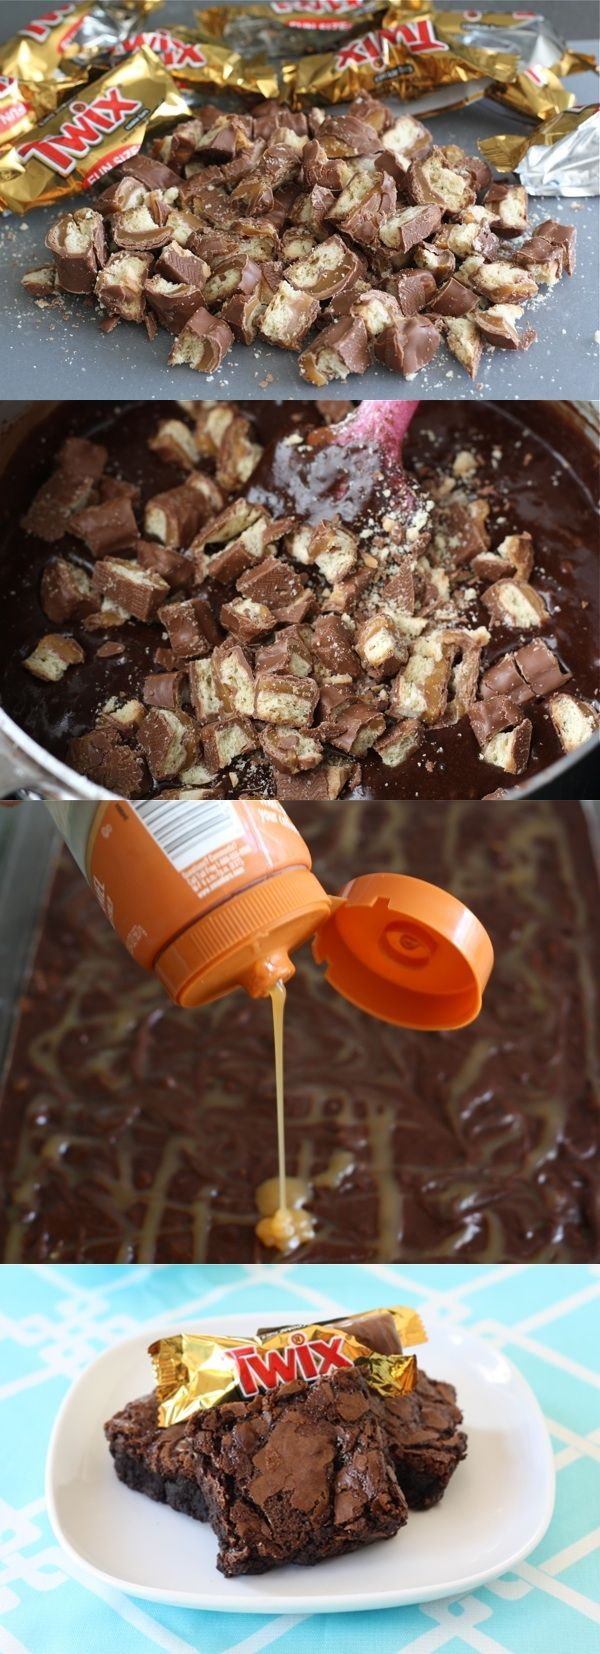 ... Twix Brownies op Pinterest - Brownies, Chocolade en Brownie Recepten